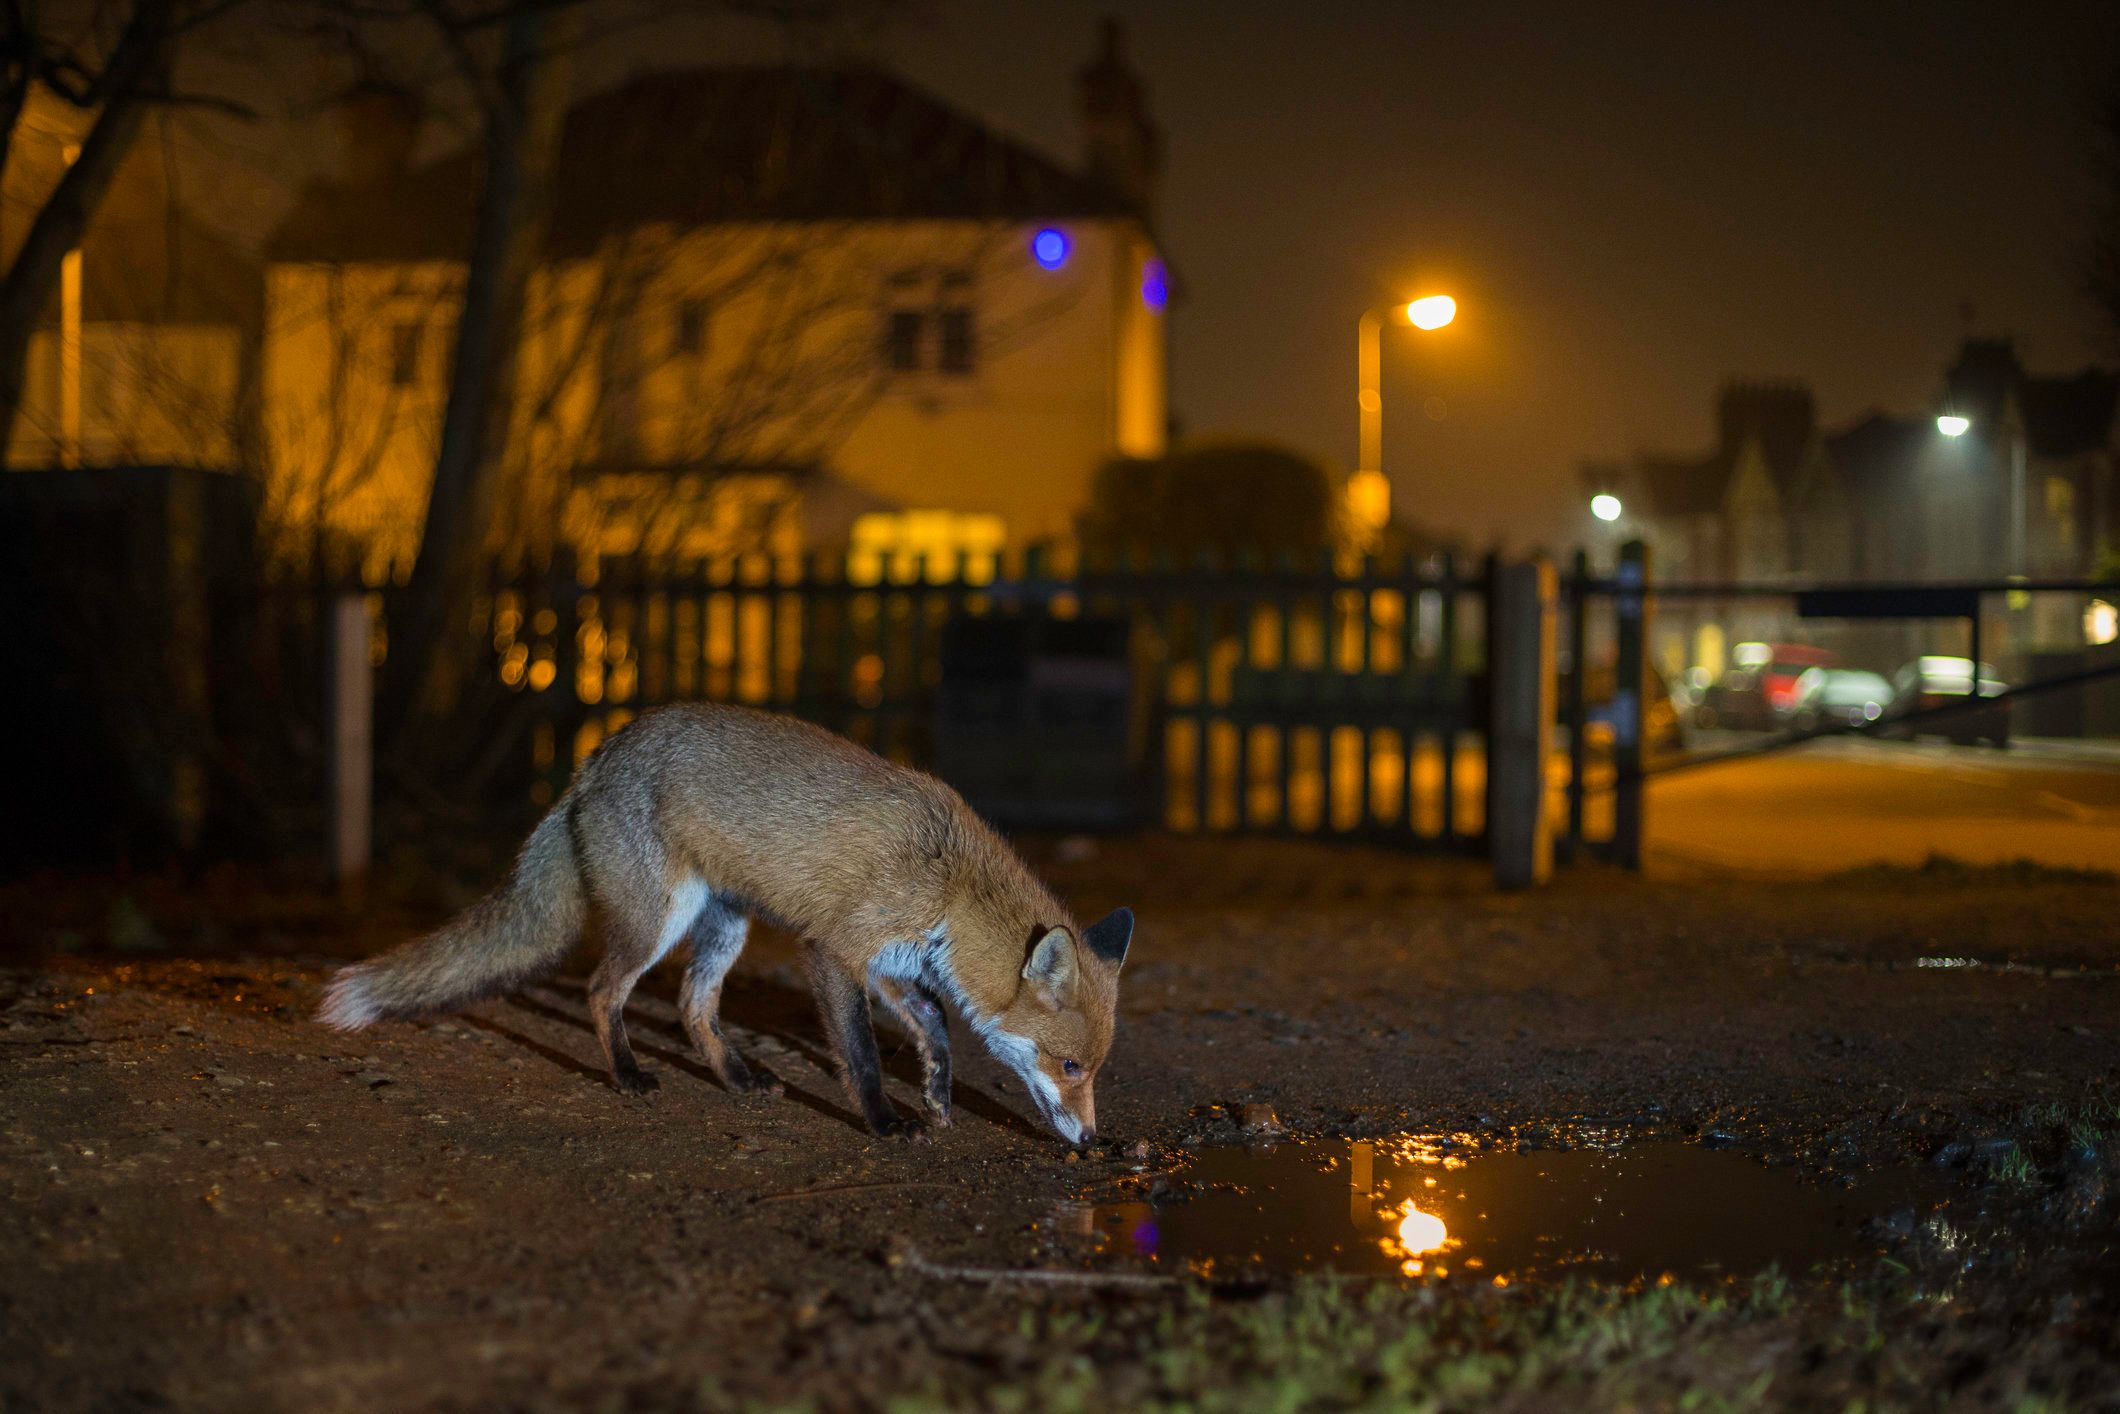 Hundreds of foxes could potentially be culled in the new